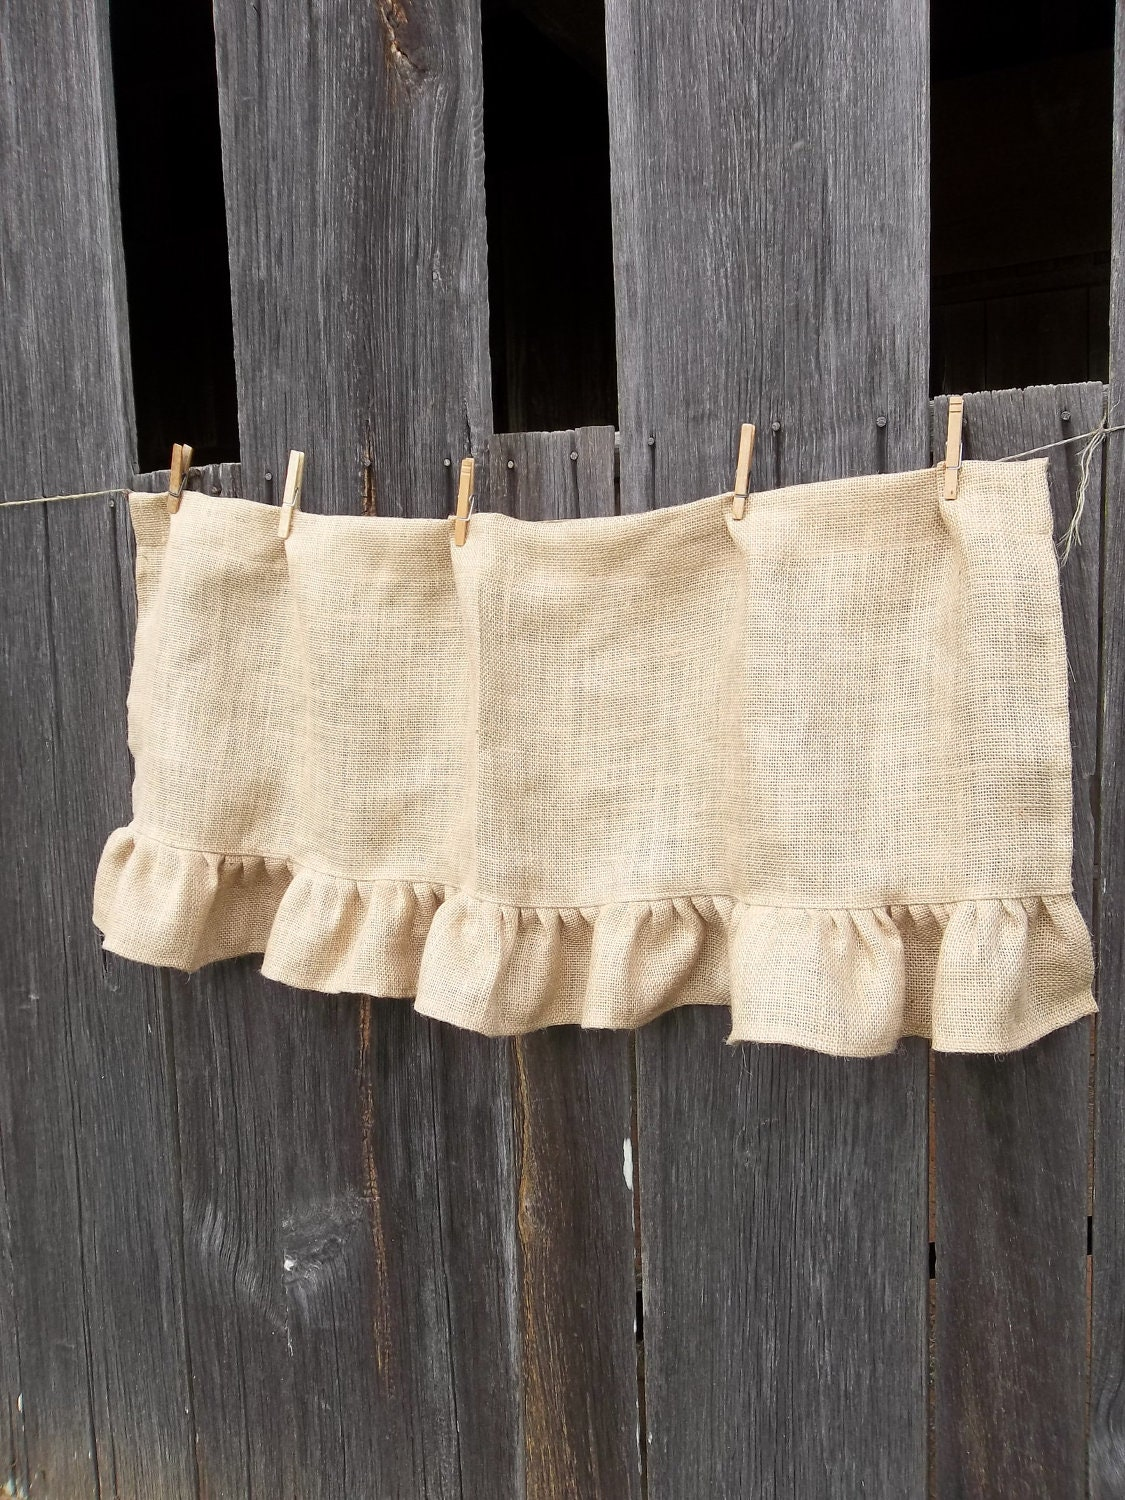 Burlap Valances For Windows : Ruffled burlap curtain custom sizes farmhouse kitchen valance